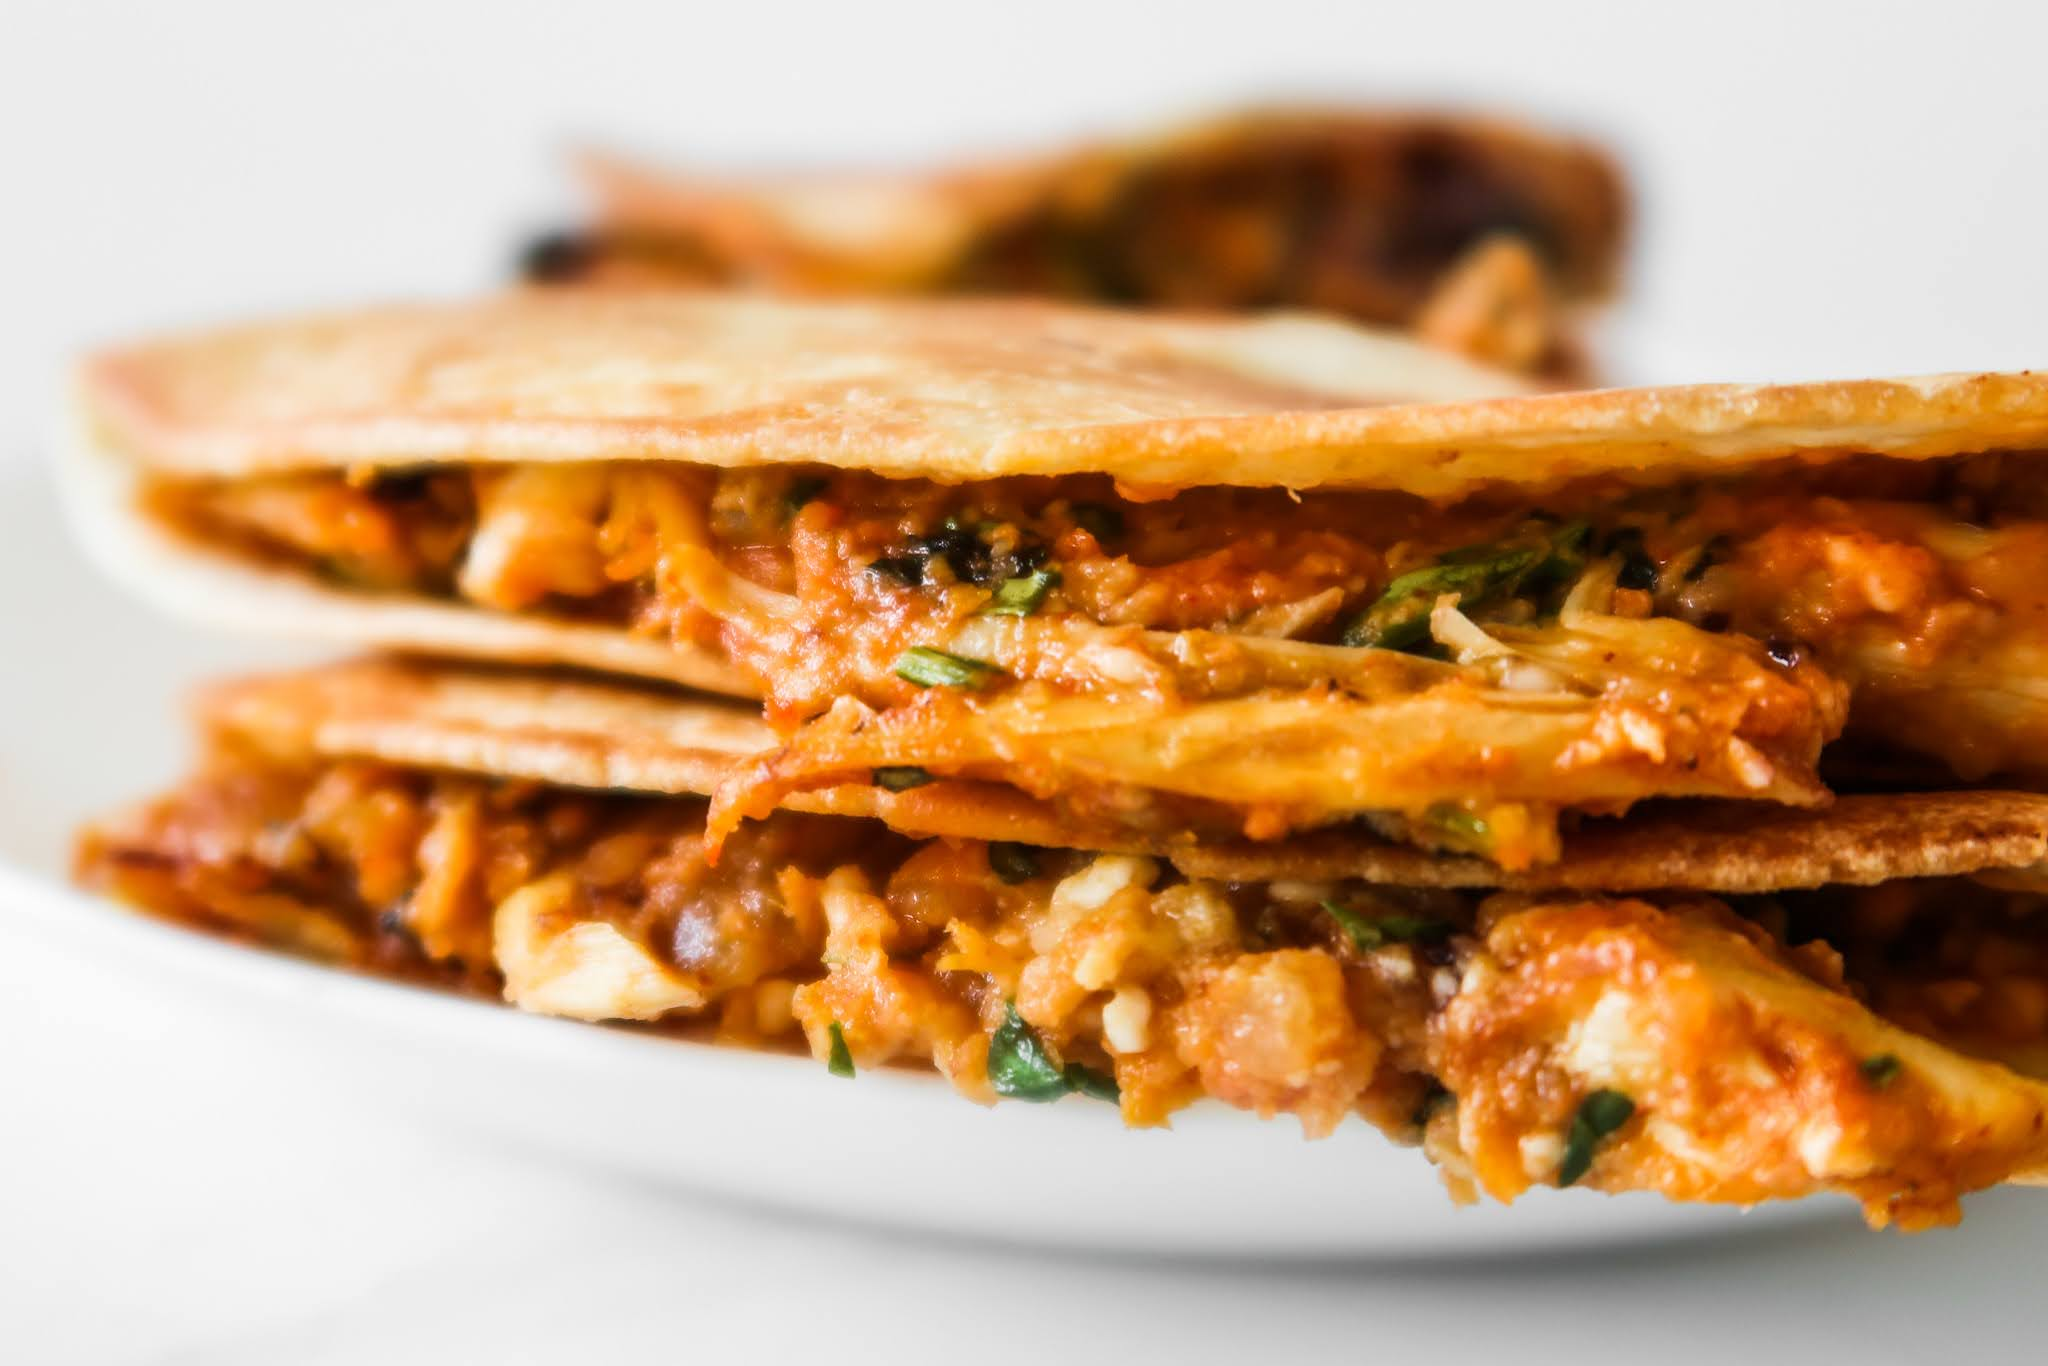 Easy Chicken Quesadilla With Feta Cheese - easy healthy lunch recipes